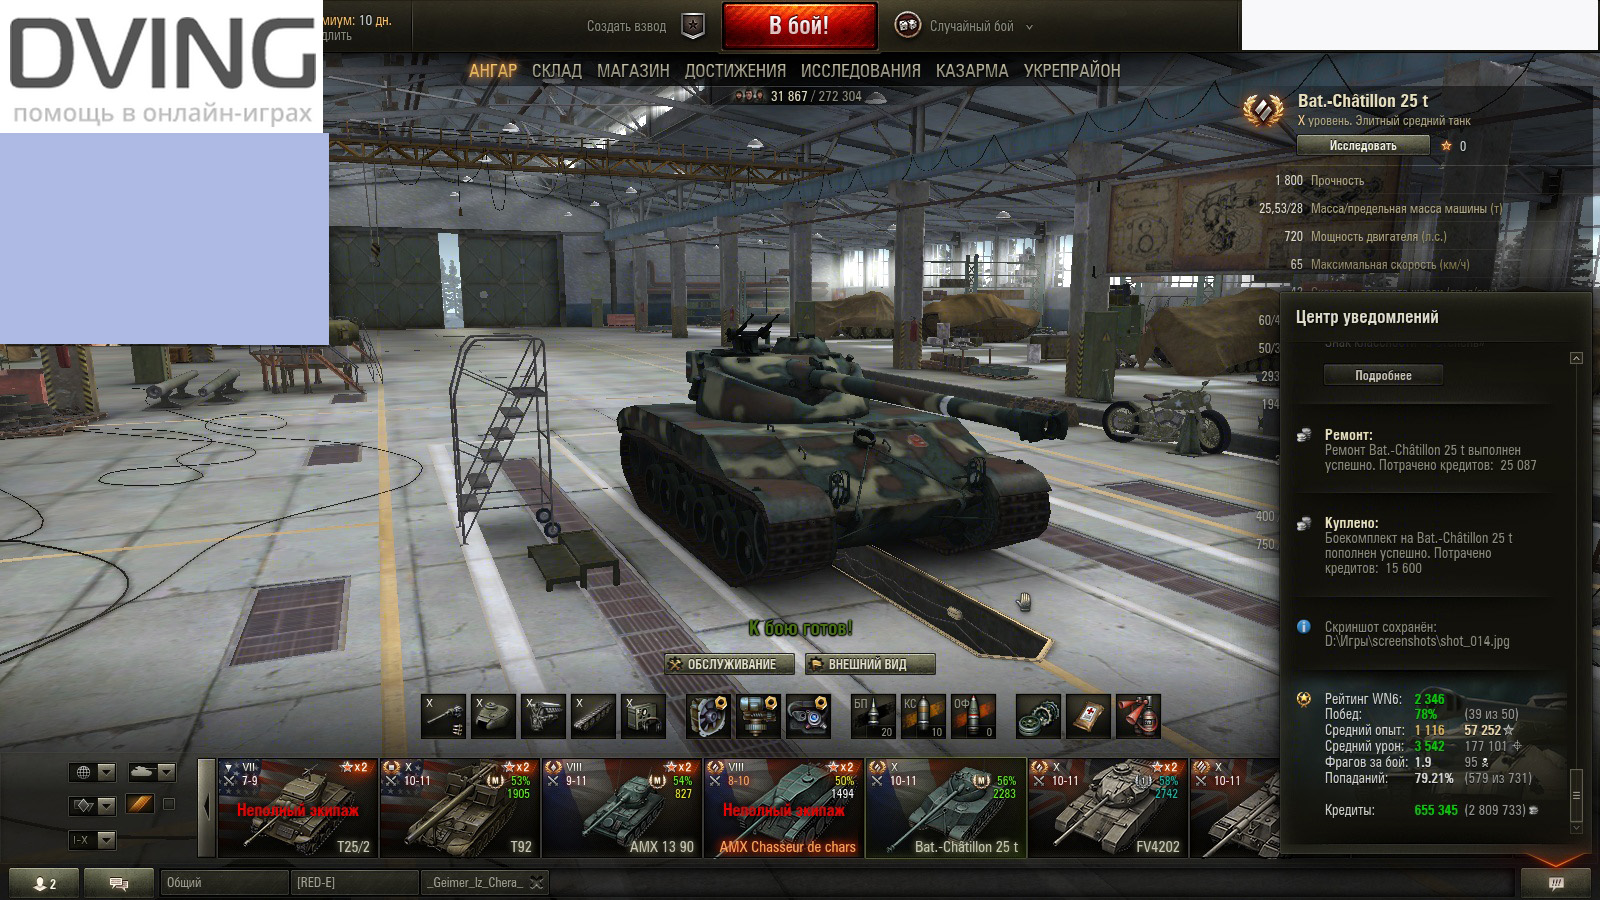 TOP DAMAGE World of Tanks Dving